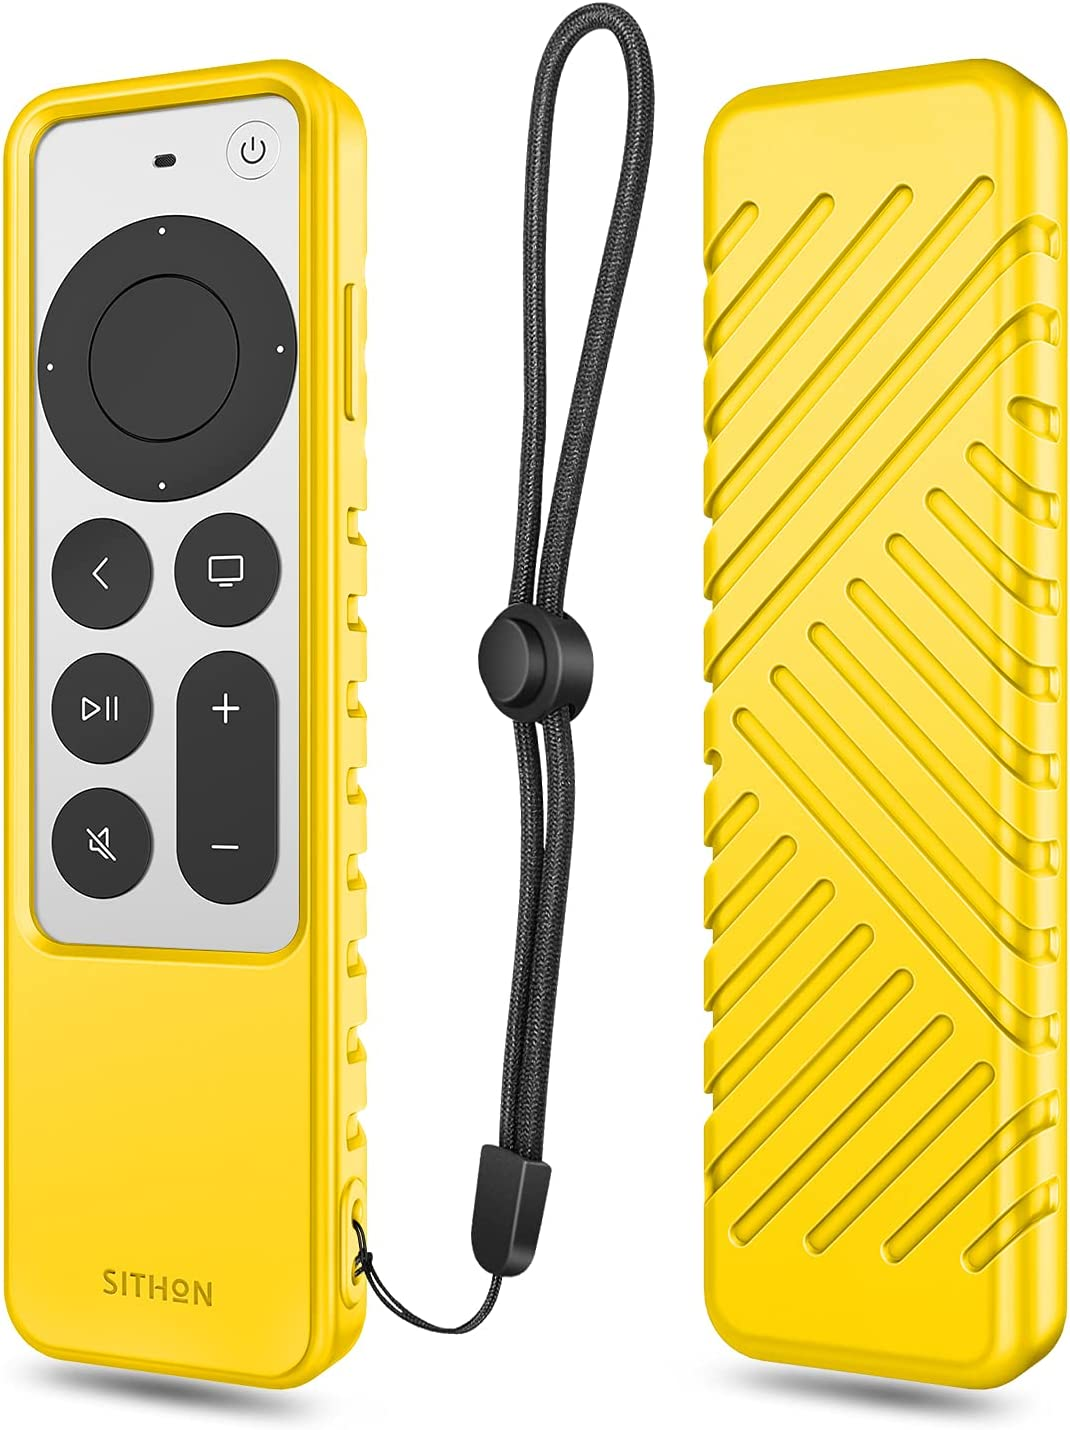 SITHON Silicone Case for Apple TV 4K 2021 Remote Controller, Lightweight Shockproof Anti Slip Protective Cover with Lanyard Strap for Apple TV 4K / HD Siri Remote (2nd Gen), Yellow